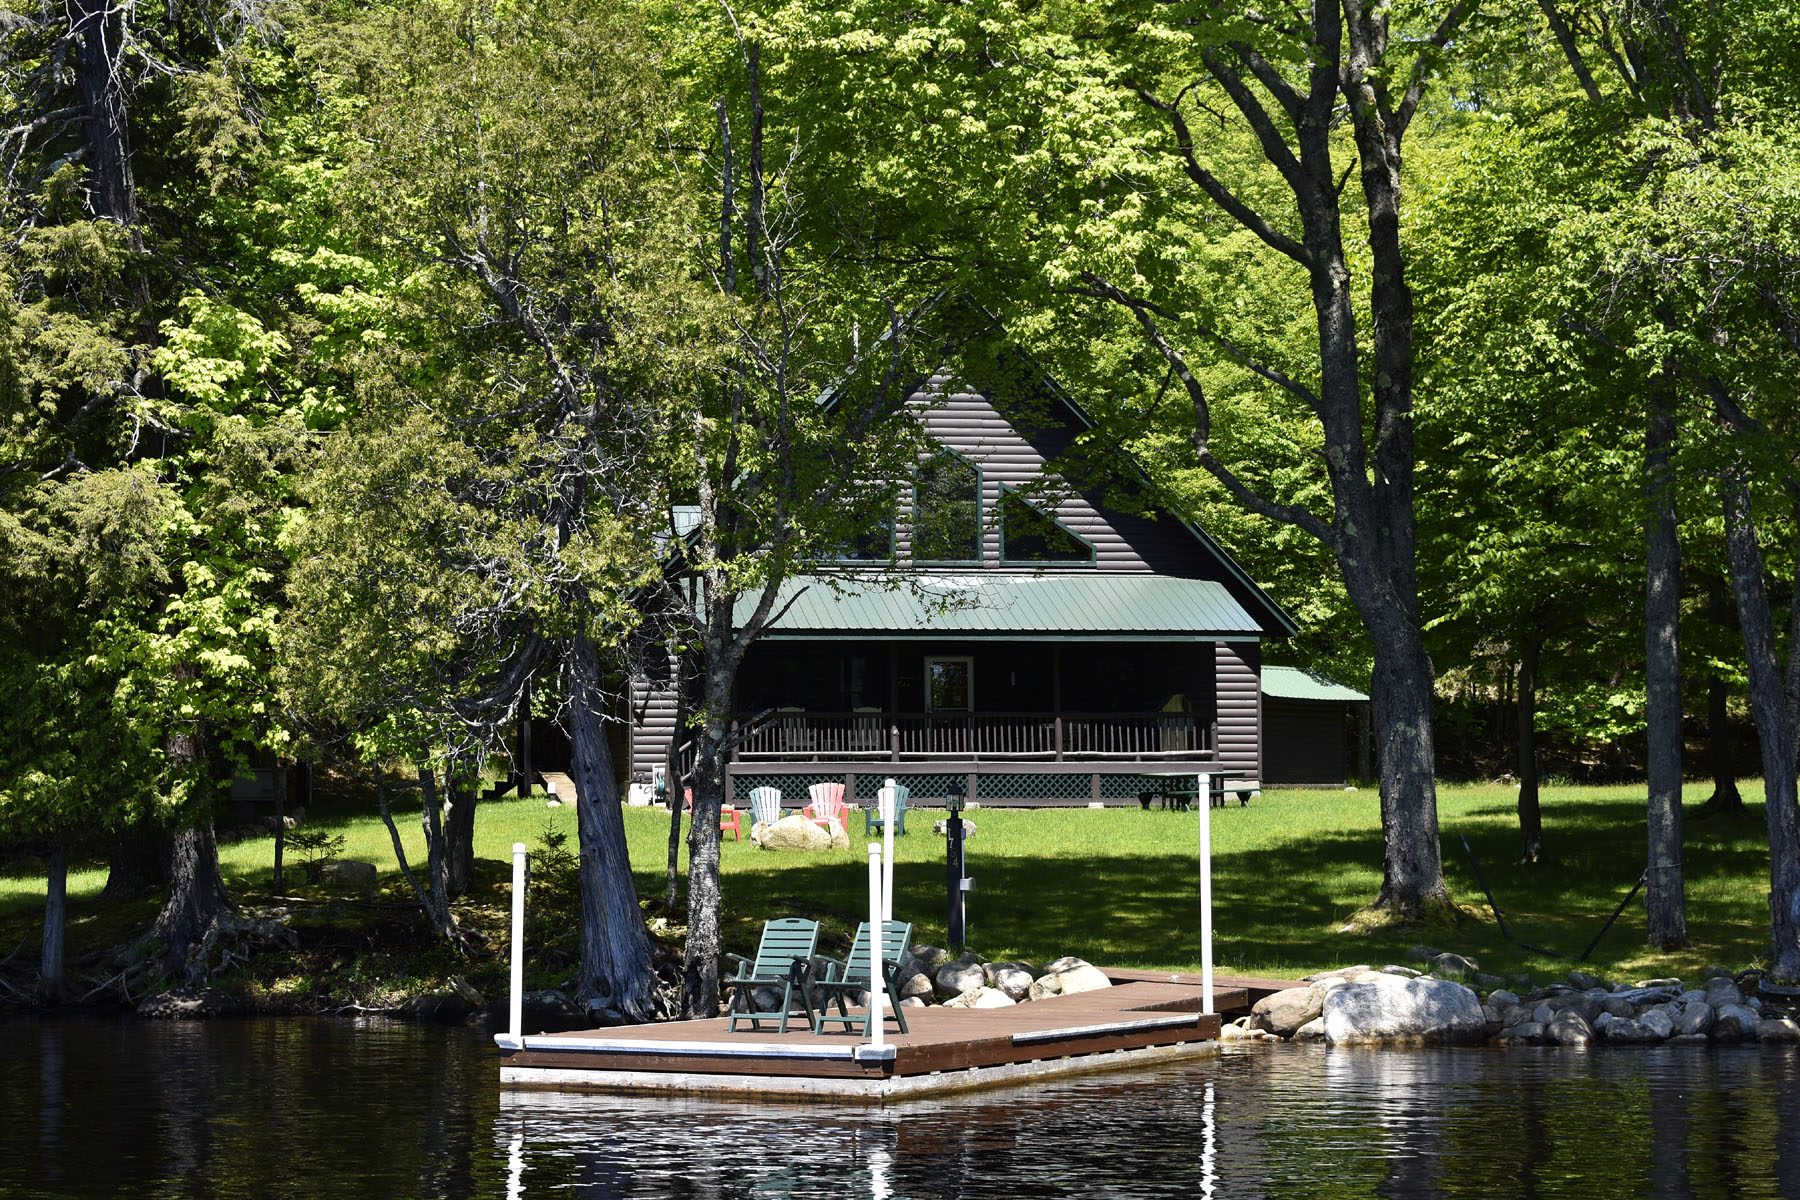 Single Family Homes for Sale at Raquette Lake Waterfront Home! 1764 Long Point Raquette Lake, New York 13436 United States